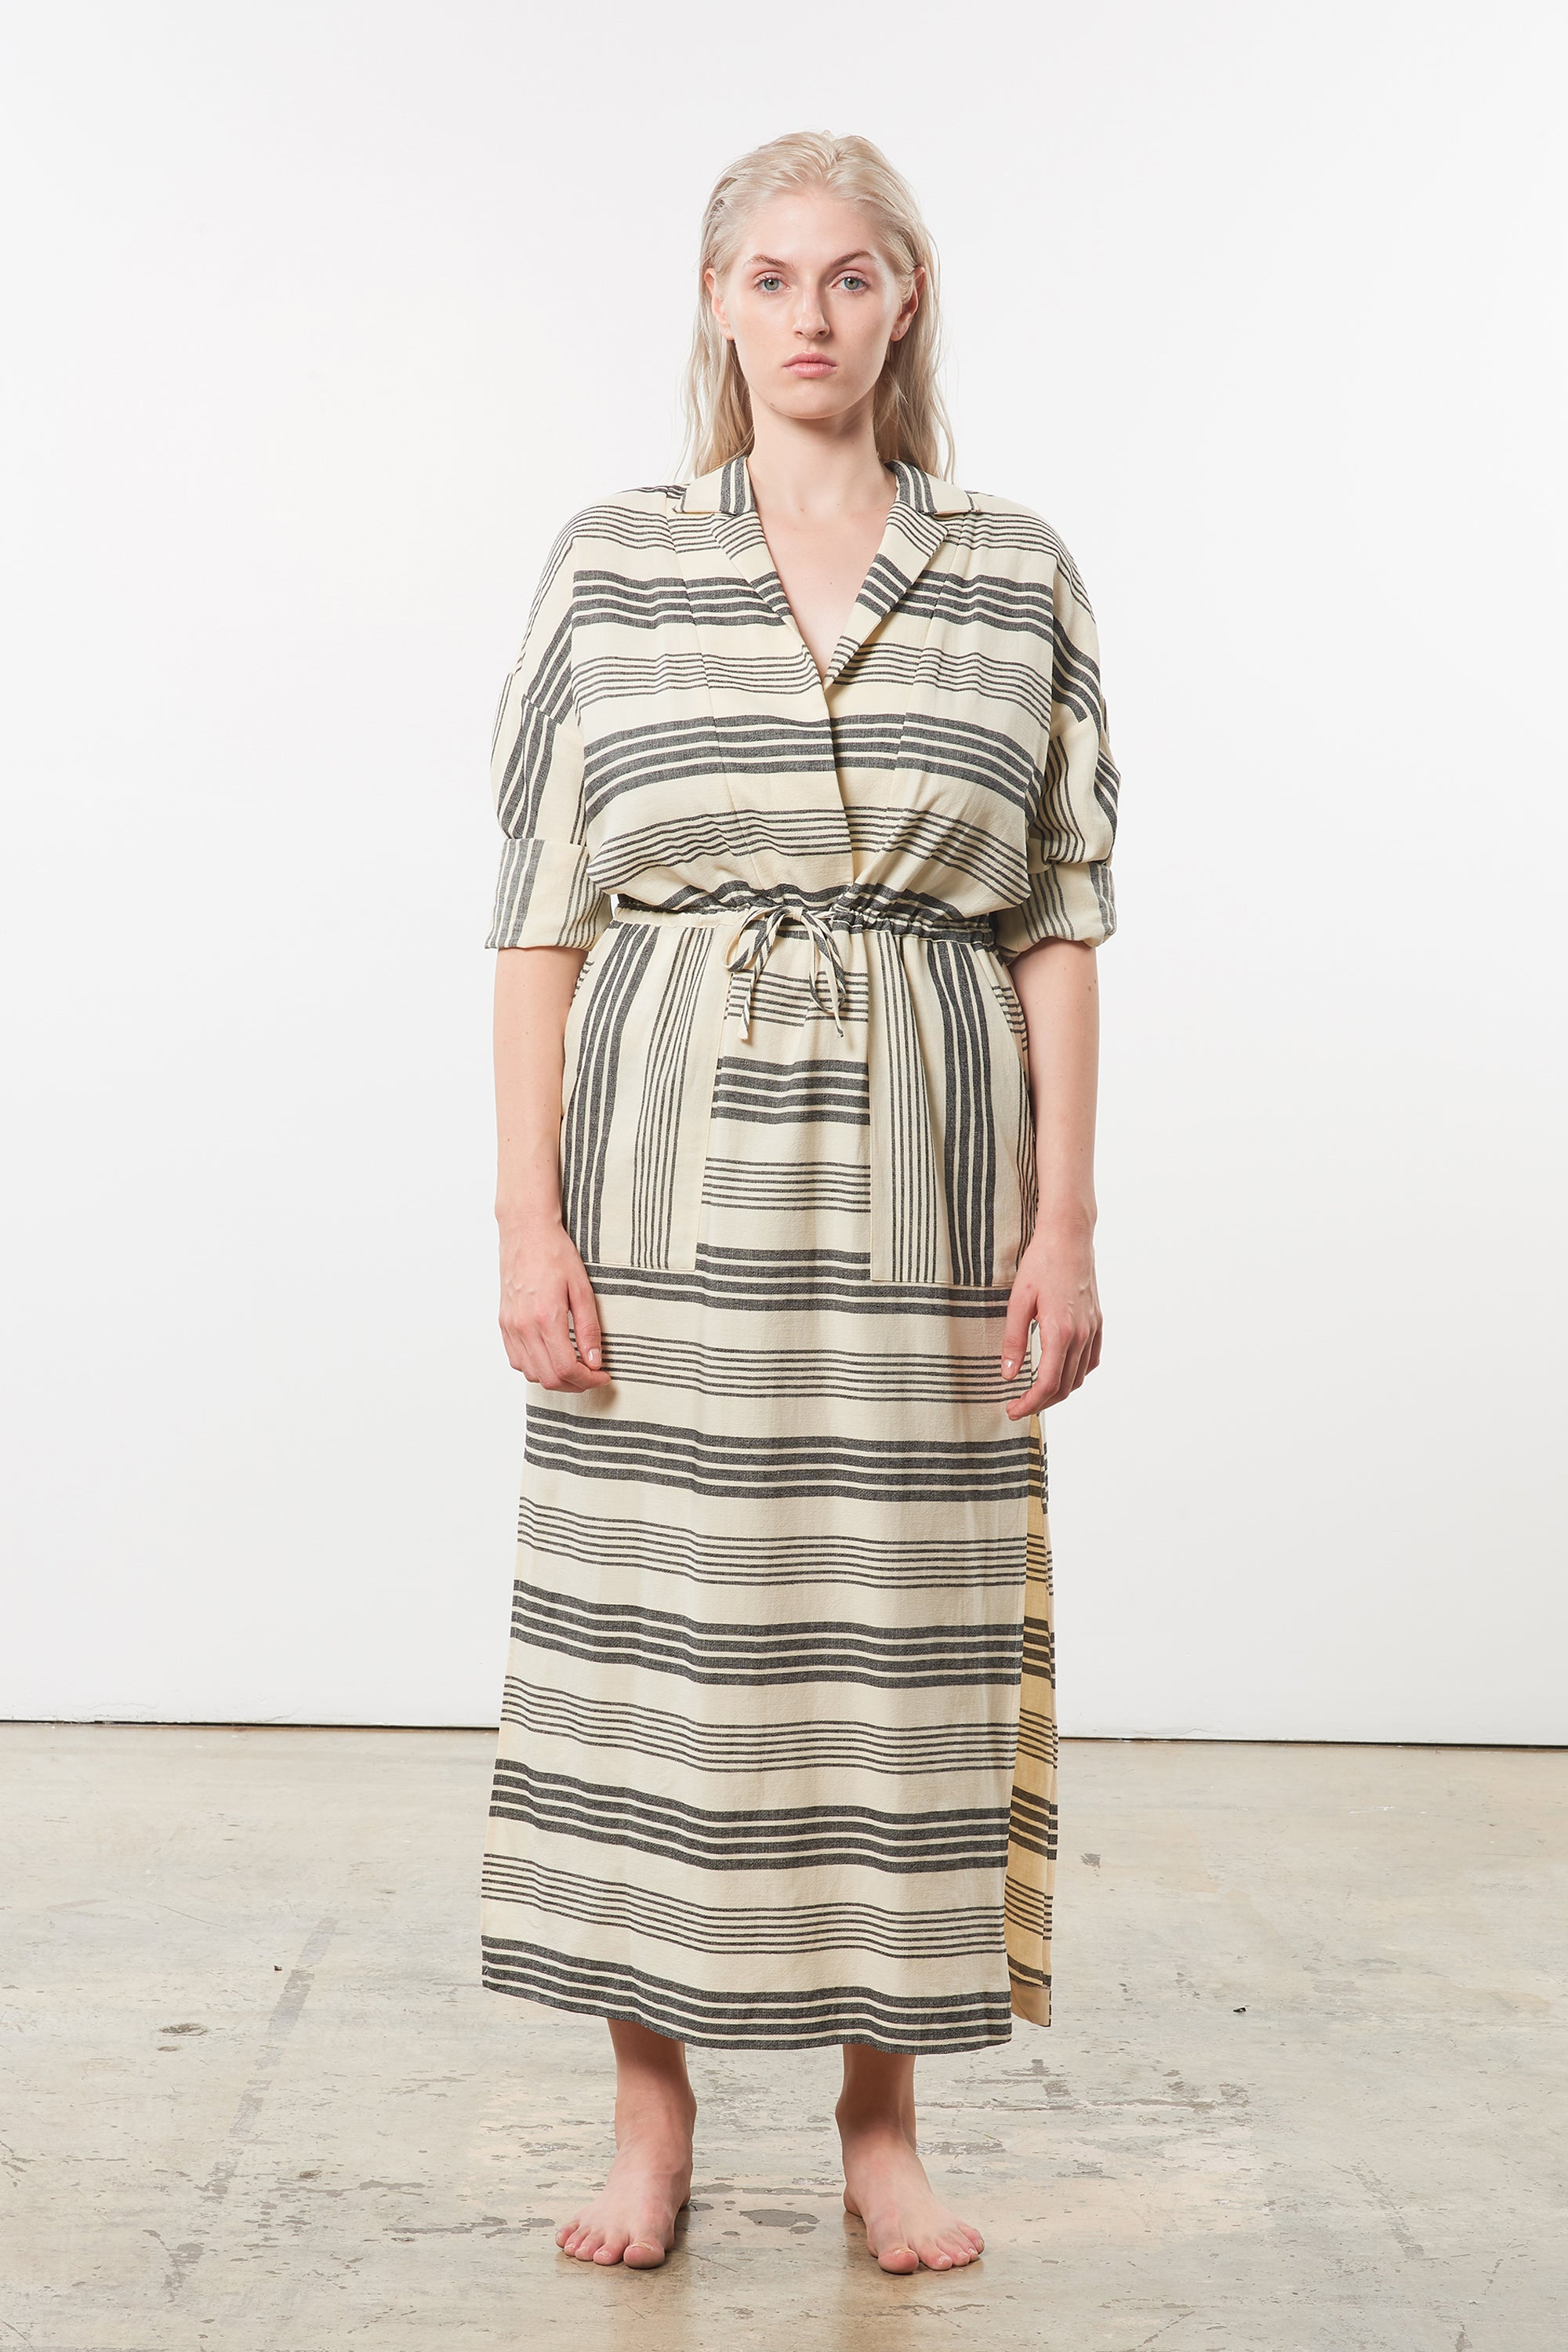 Mara Hoffman Extended Diega Coverup Dress in black striped cotton TENCEL Lyocell blend (front)